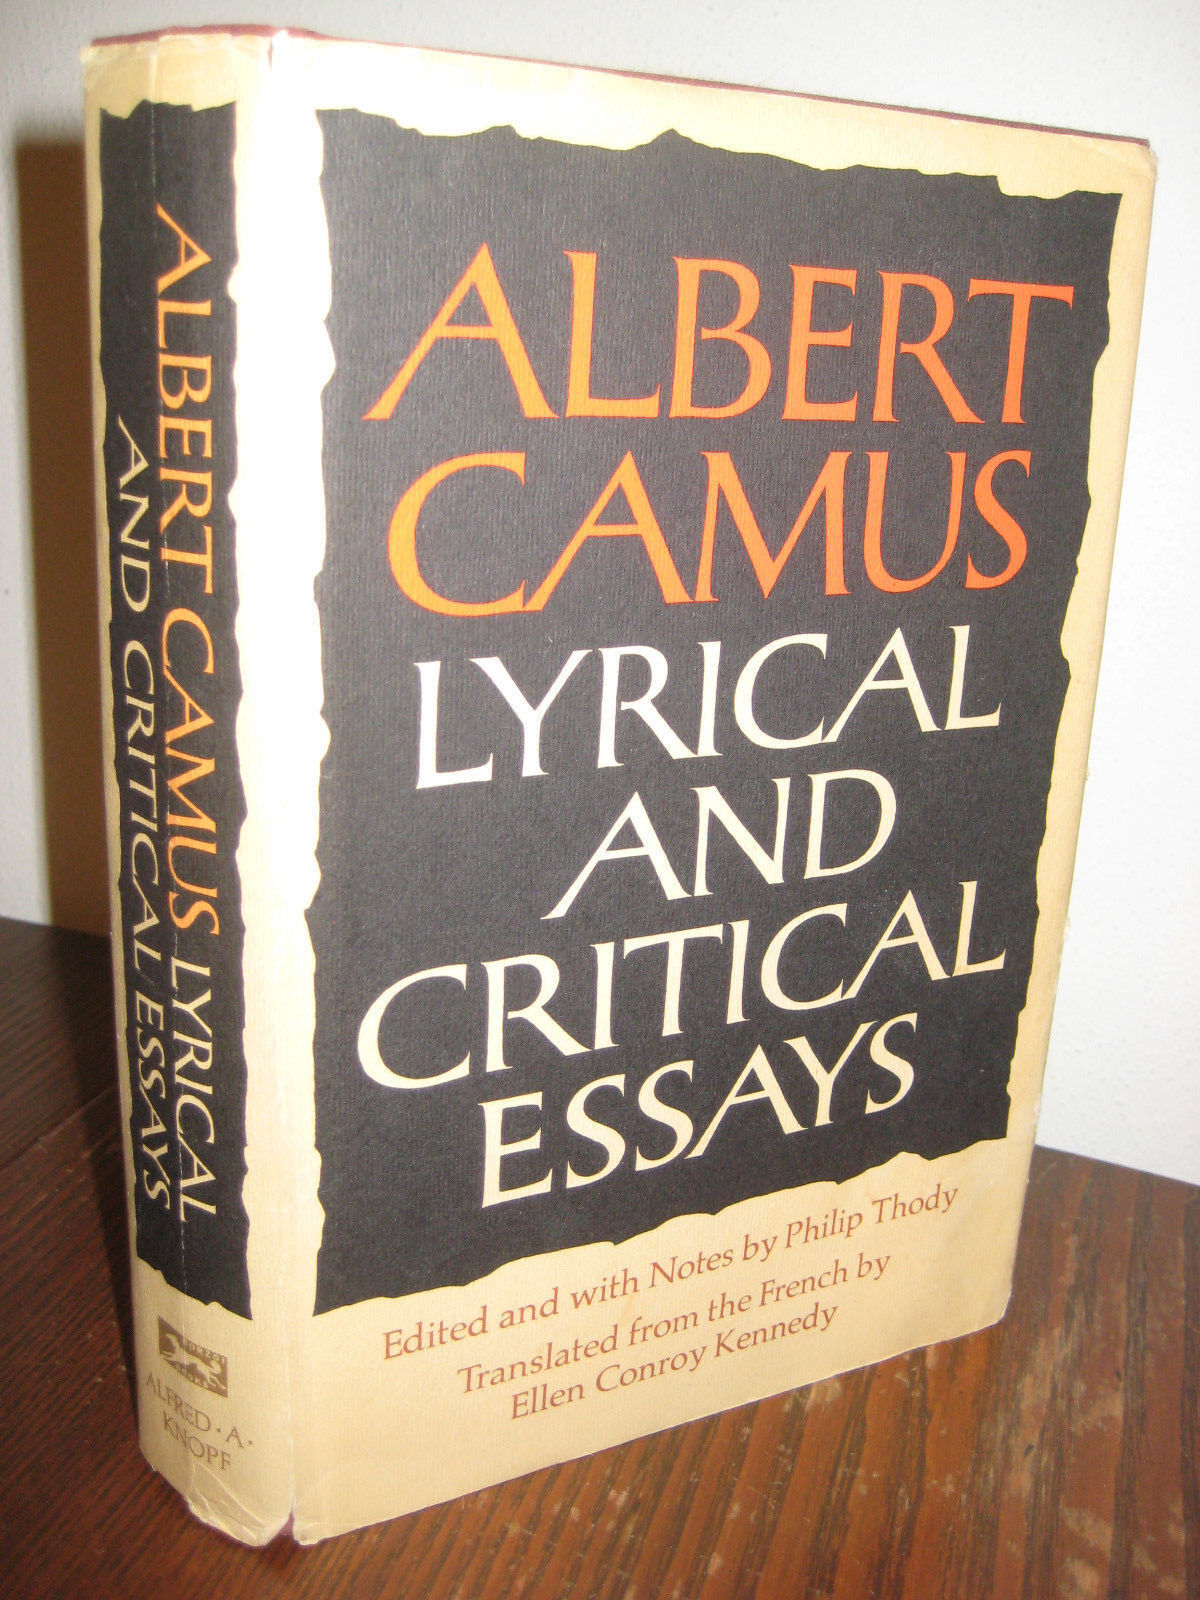 "lyrical and critical essays camus Albert camus is considered one of the greatest existentialist writers of all time however, although he was considered an existentialist writer, camus never labeled himself as an existentialist ""no, i am not an existentialist"" (albert camus: lyrical and critical essays, vintage (1970)) camus."